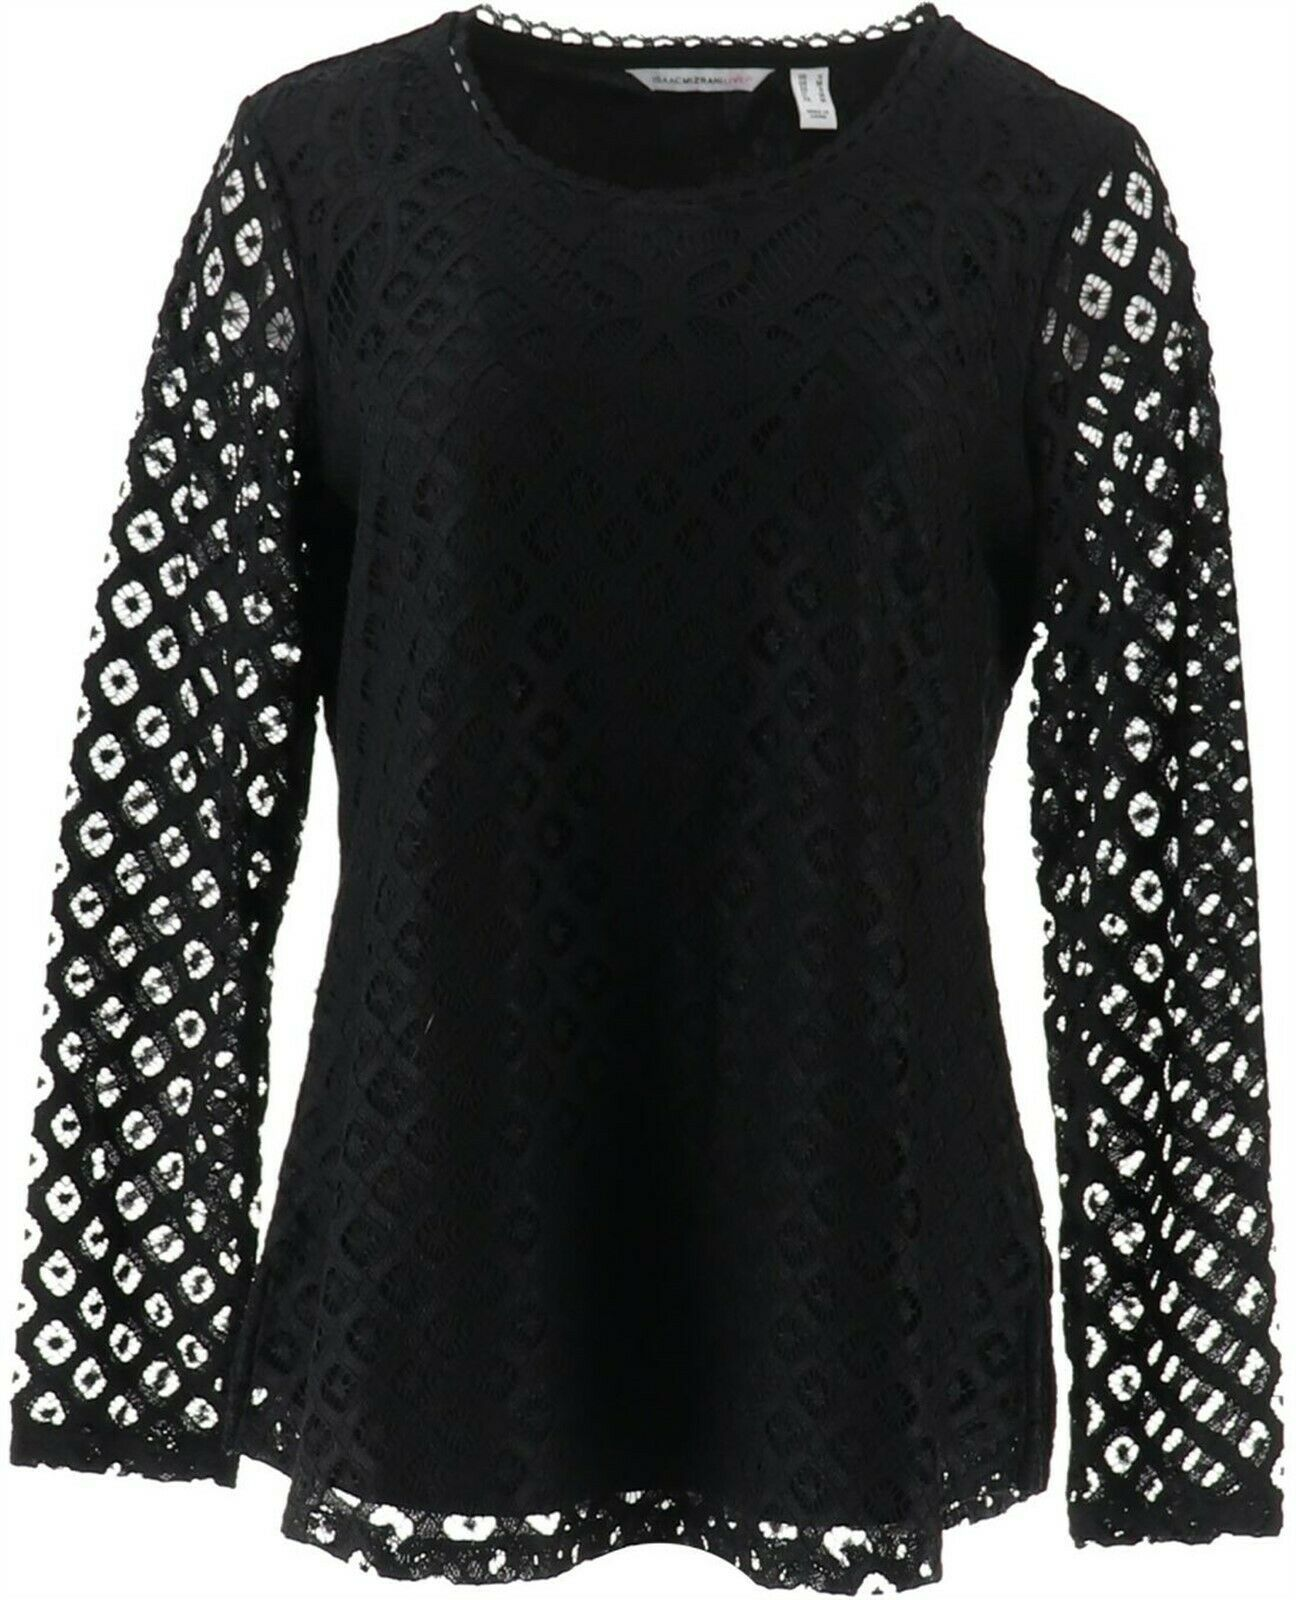 Primary image for Isaac Mizrahi Stretch Lace Scoop Neck Tunic Black XL NEW A294654